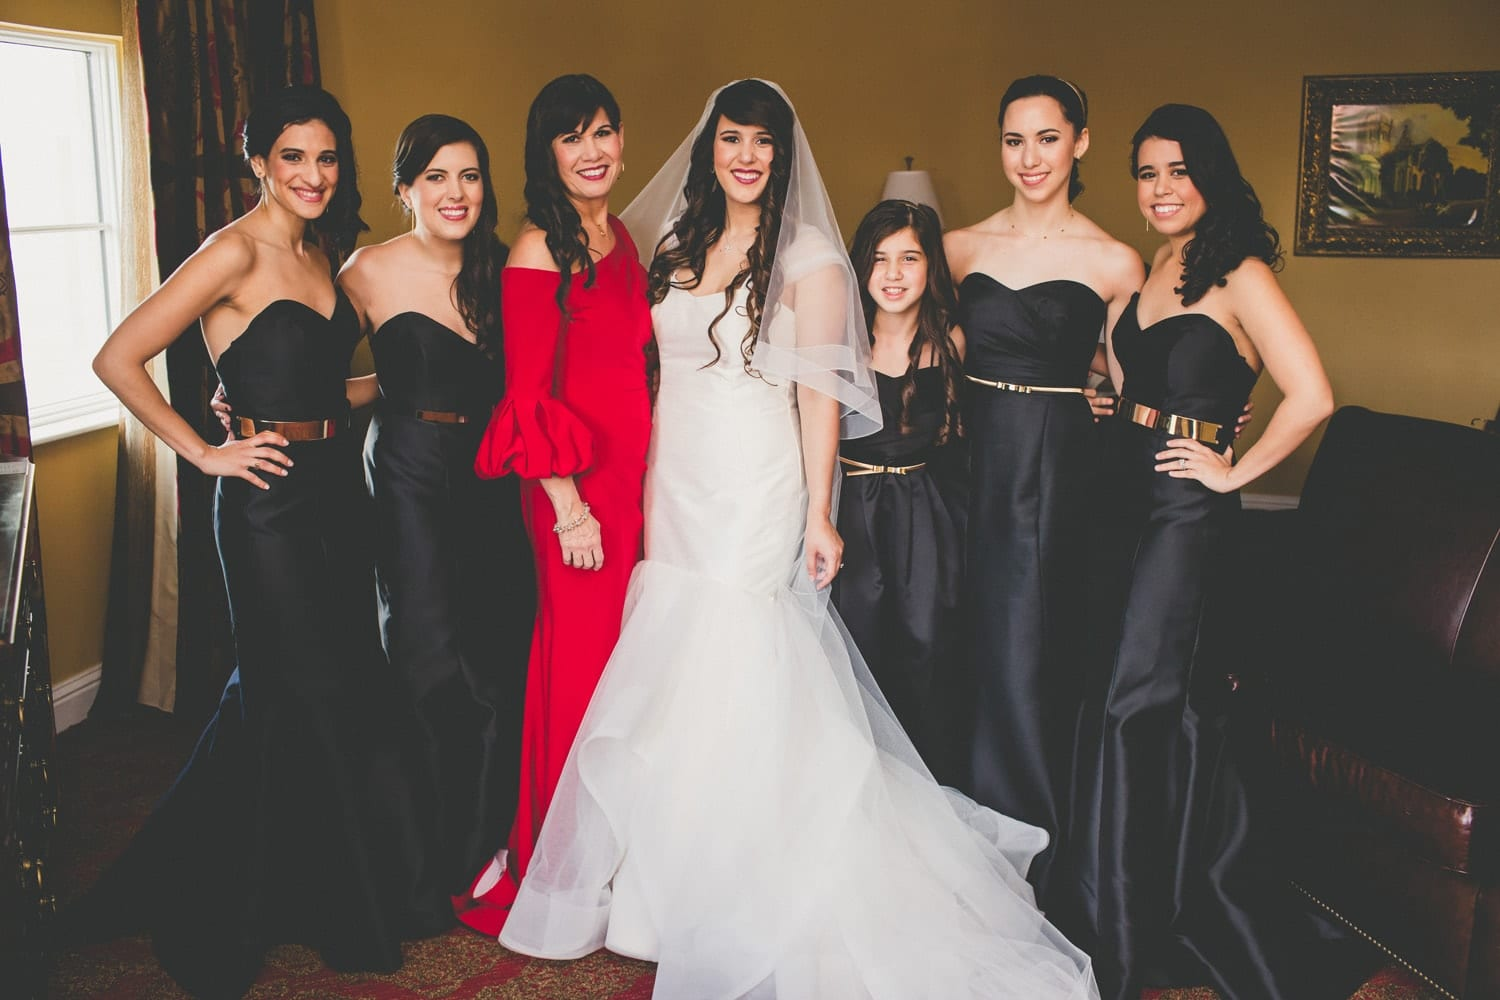 Bridesmaids Portrait | Modern Geometric Wedding in St. Augustine at The Treasury on The Plaza